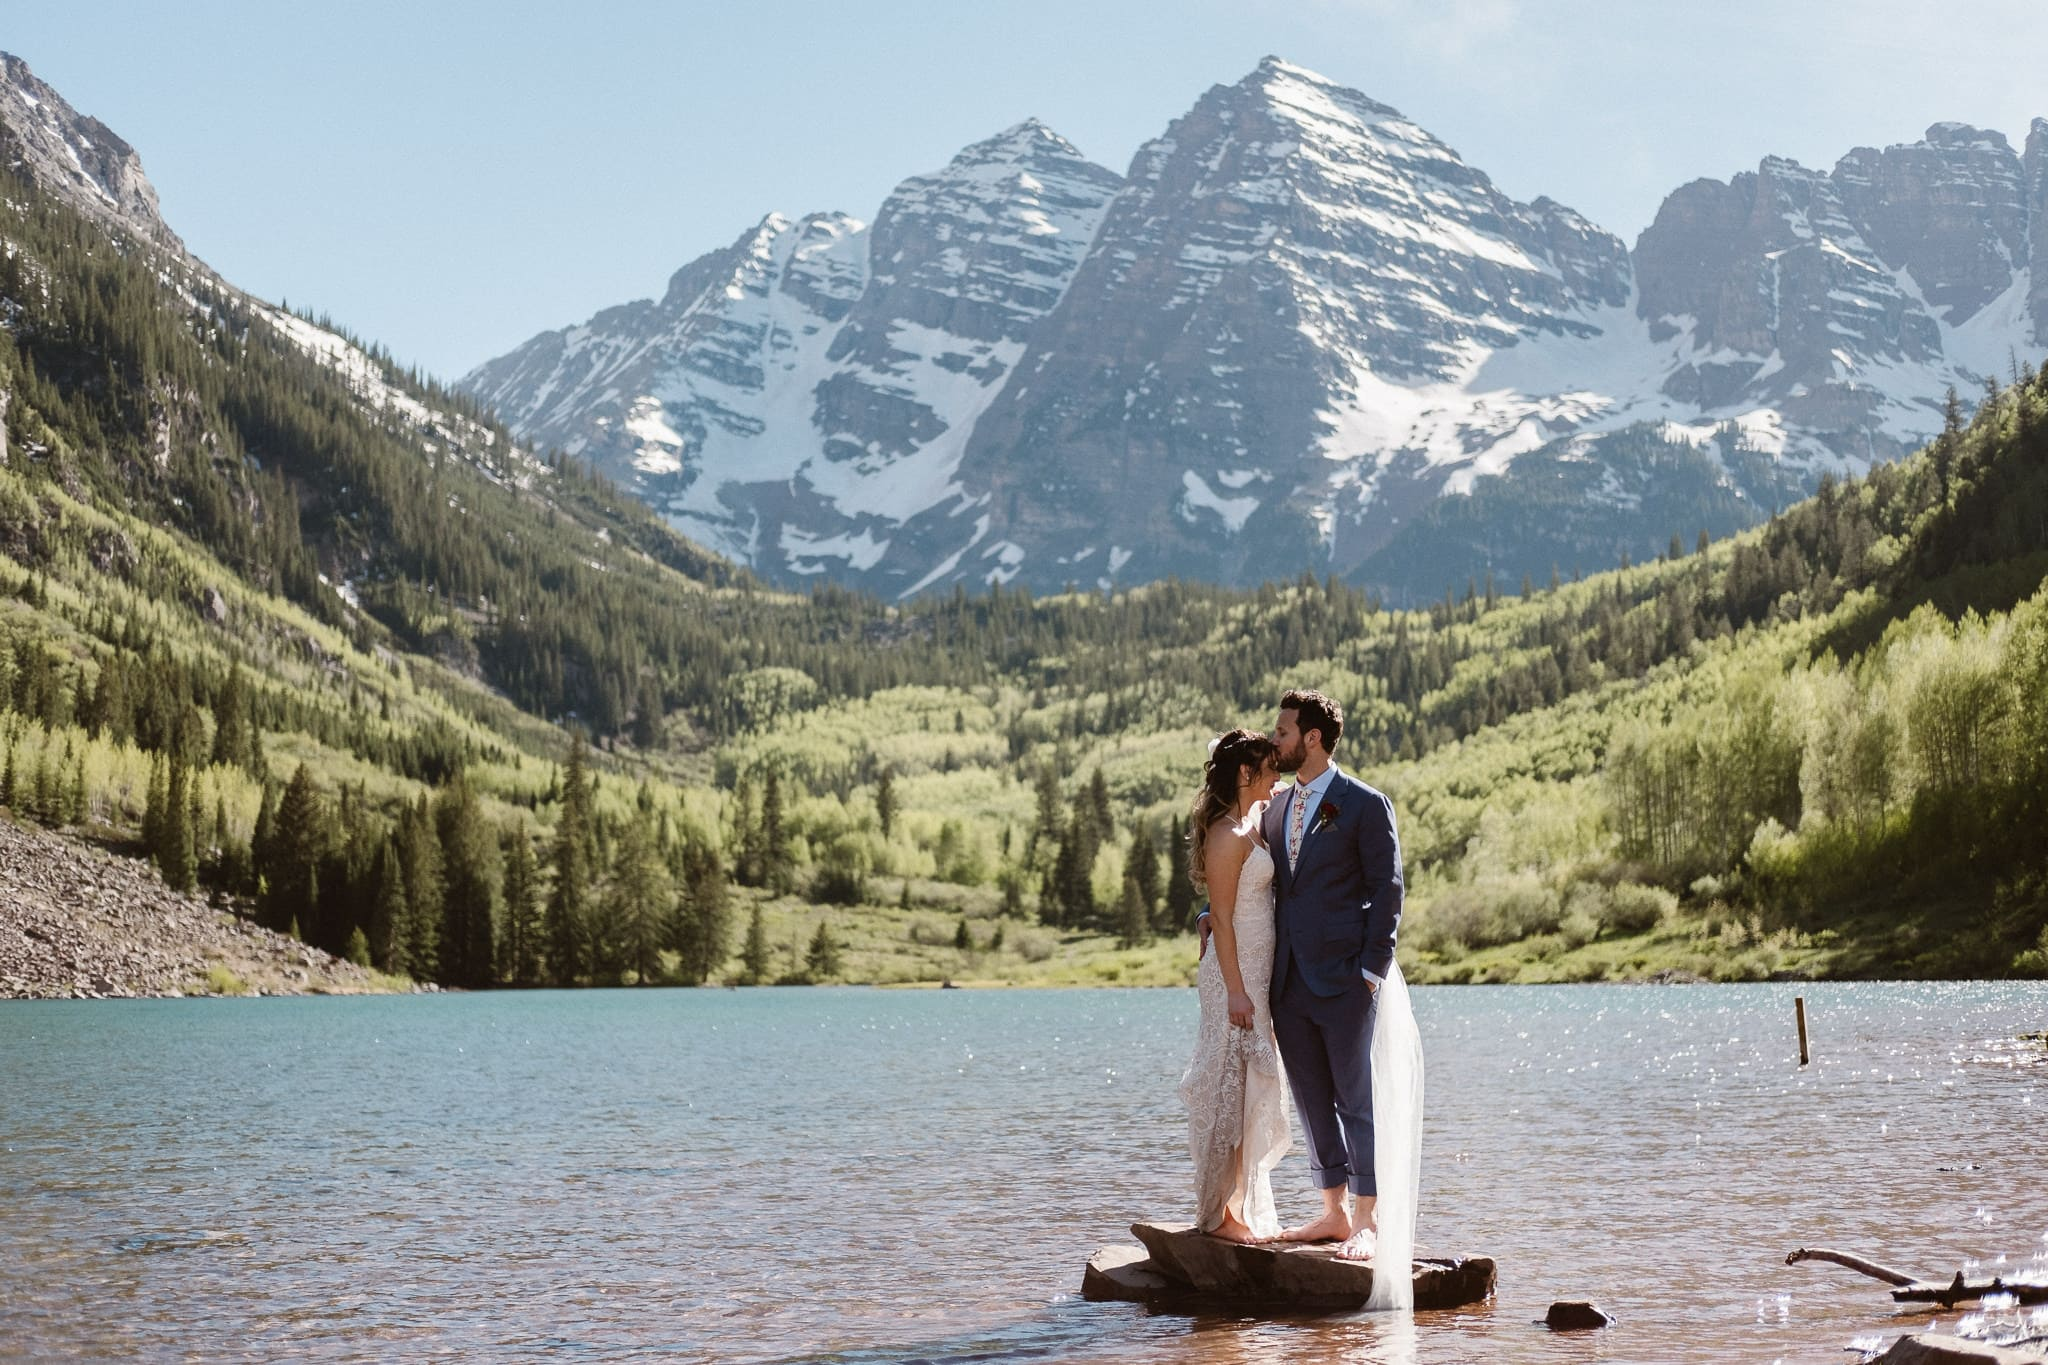 Maroon Bells Amphitheater elopement, Aspen wedding photographer, Colorado adventure elopement, bride and groom standing on rock in alpine lake